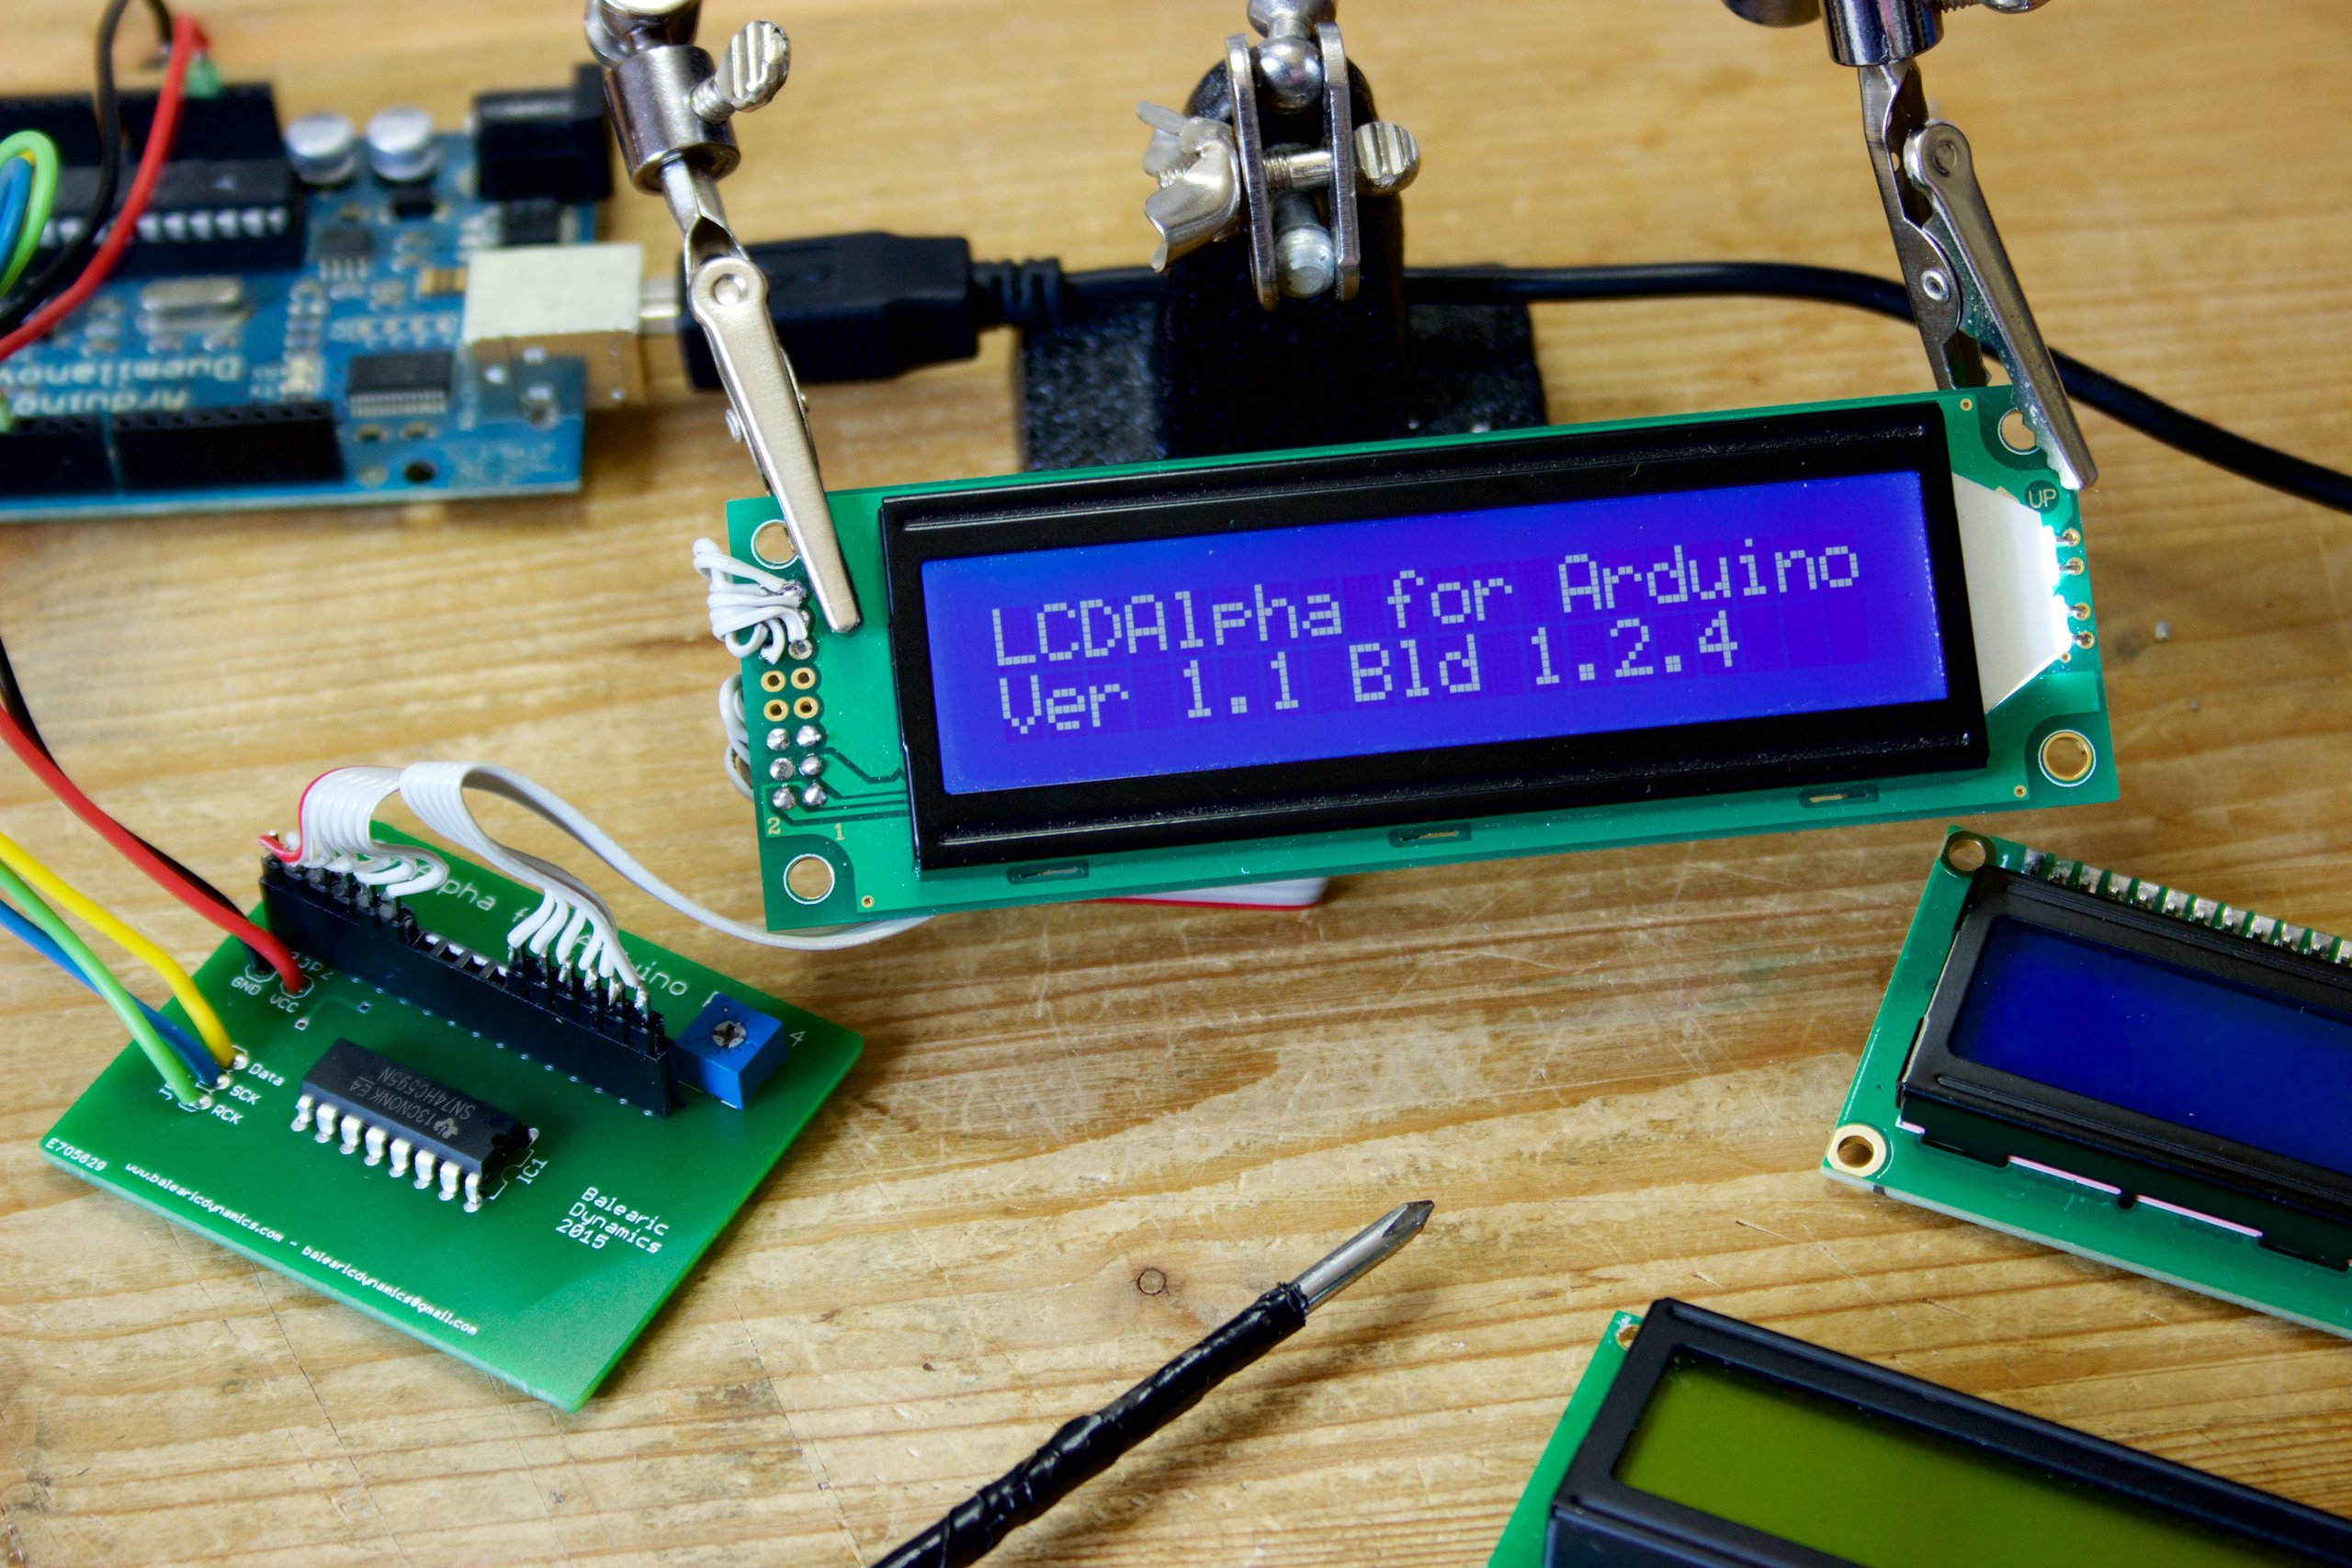 Alphanumeric lcd arduino kit from alicemirror on tindie